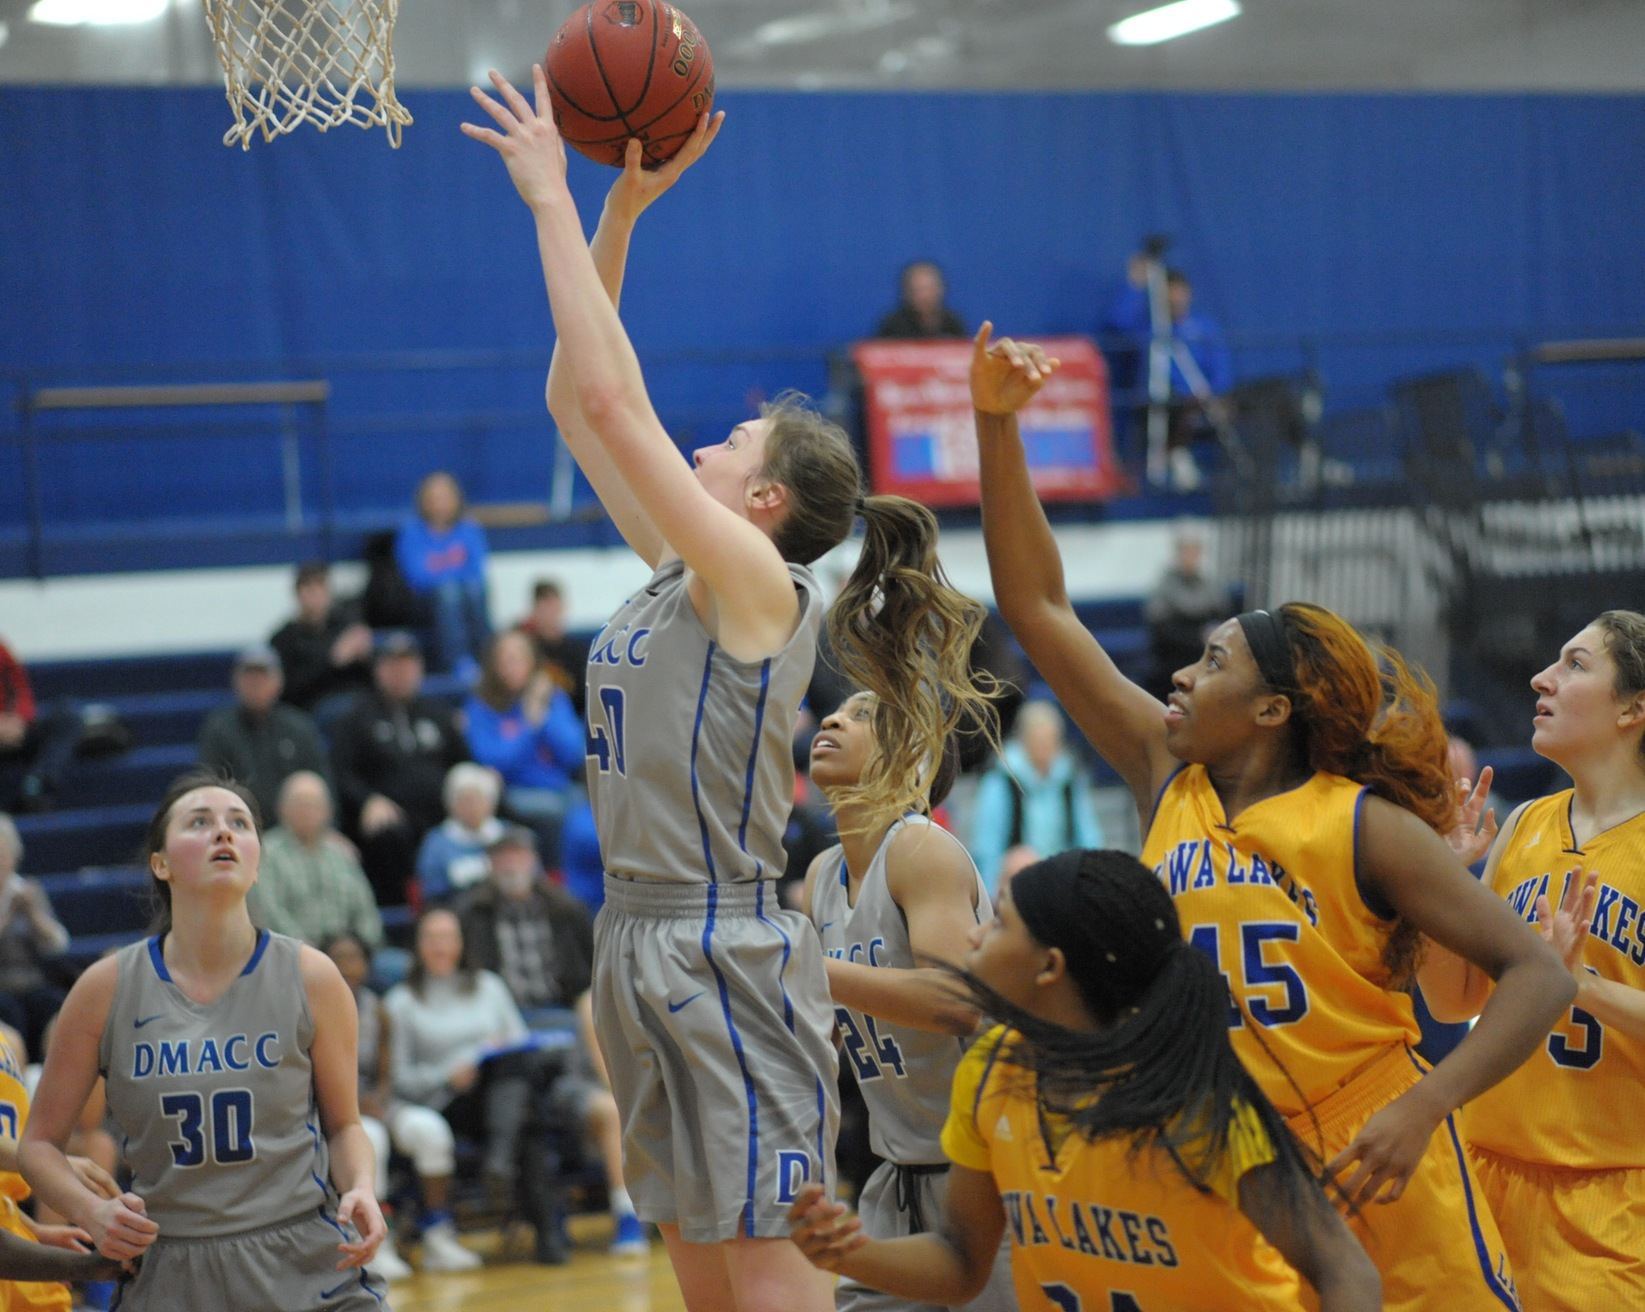 DMACC Women's Basketball Team Drops 69-55 Decision to ILCC